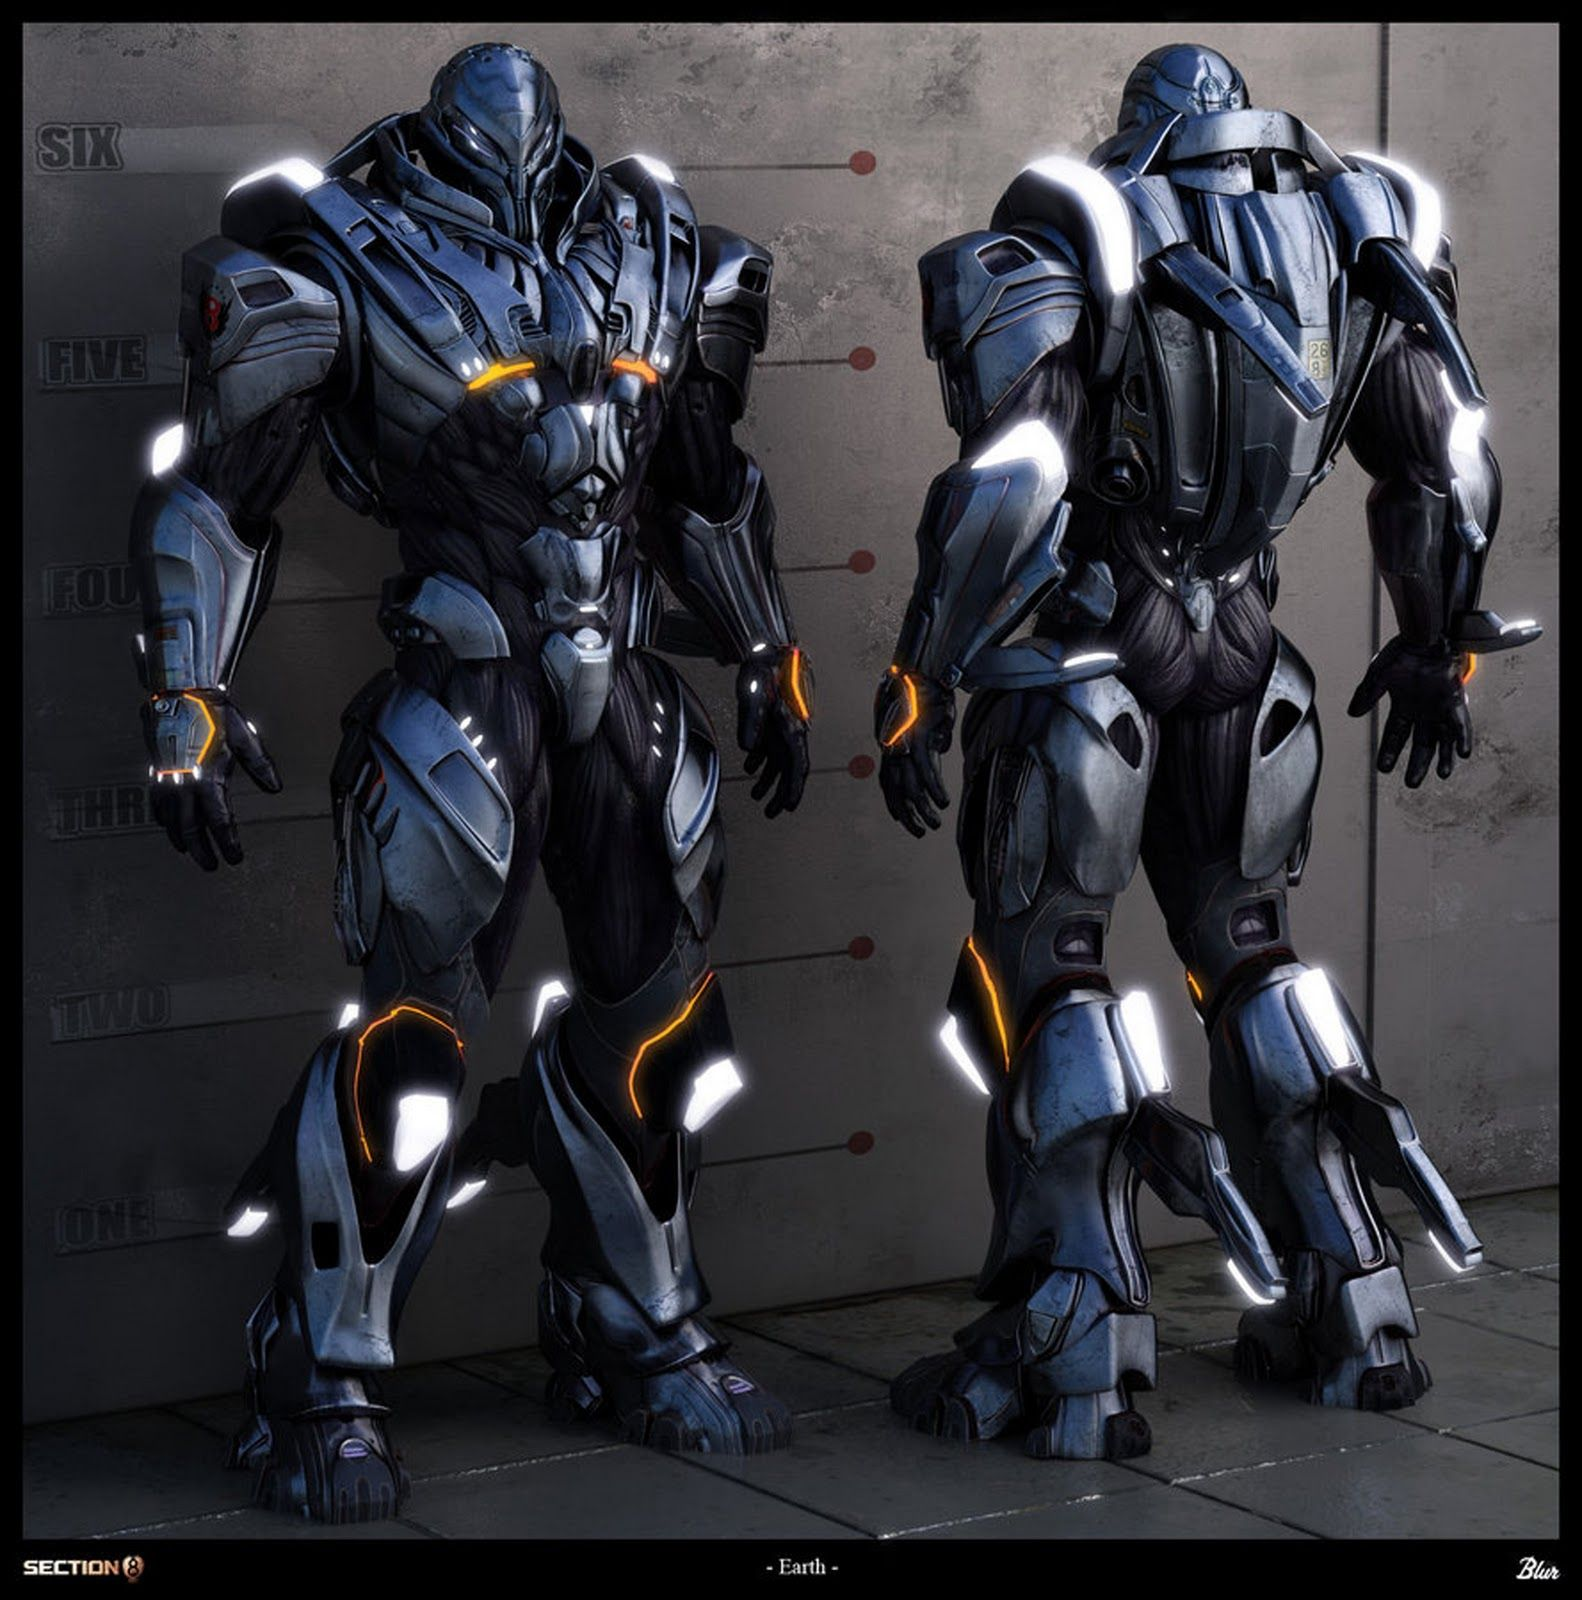 Dsng S Sci Fi Megaverse Sci Fi Futuristic Concept Armor And Mecha Designs Part 2 Sci Fi Armor Armor Concept Futuristic Armour Workers in an underground lab fight for their lives against a cloned dragon they created. sci fi futuristic concept armor